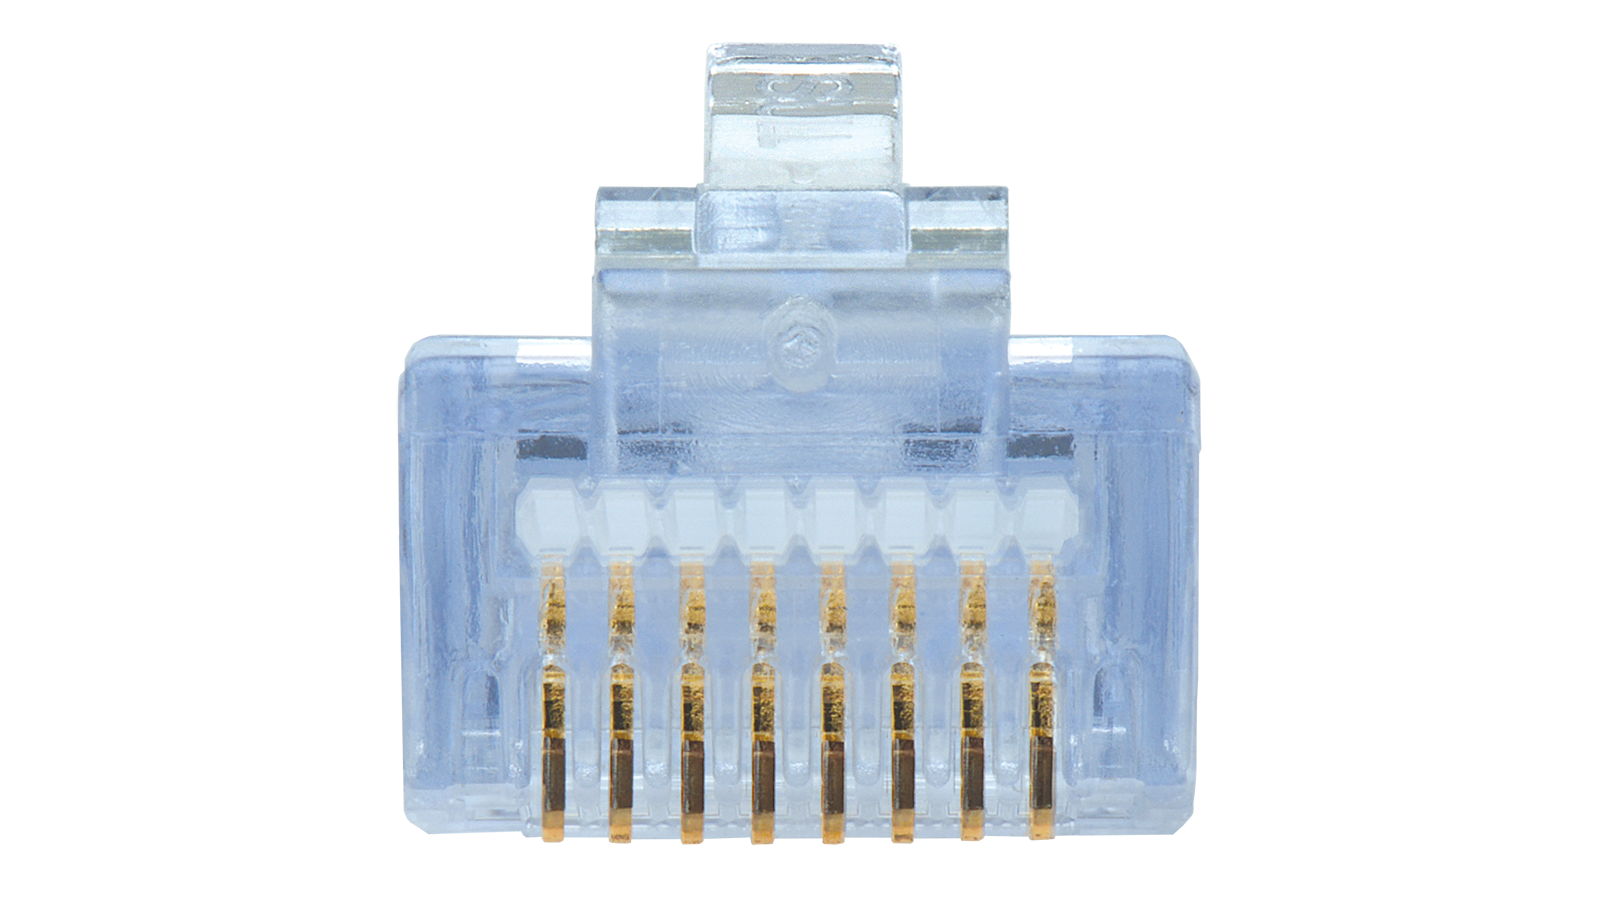 100 011lw Category 6 Ez Rj45 Plugs In A 30 Pack With Strain Relief Barel Double Female To